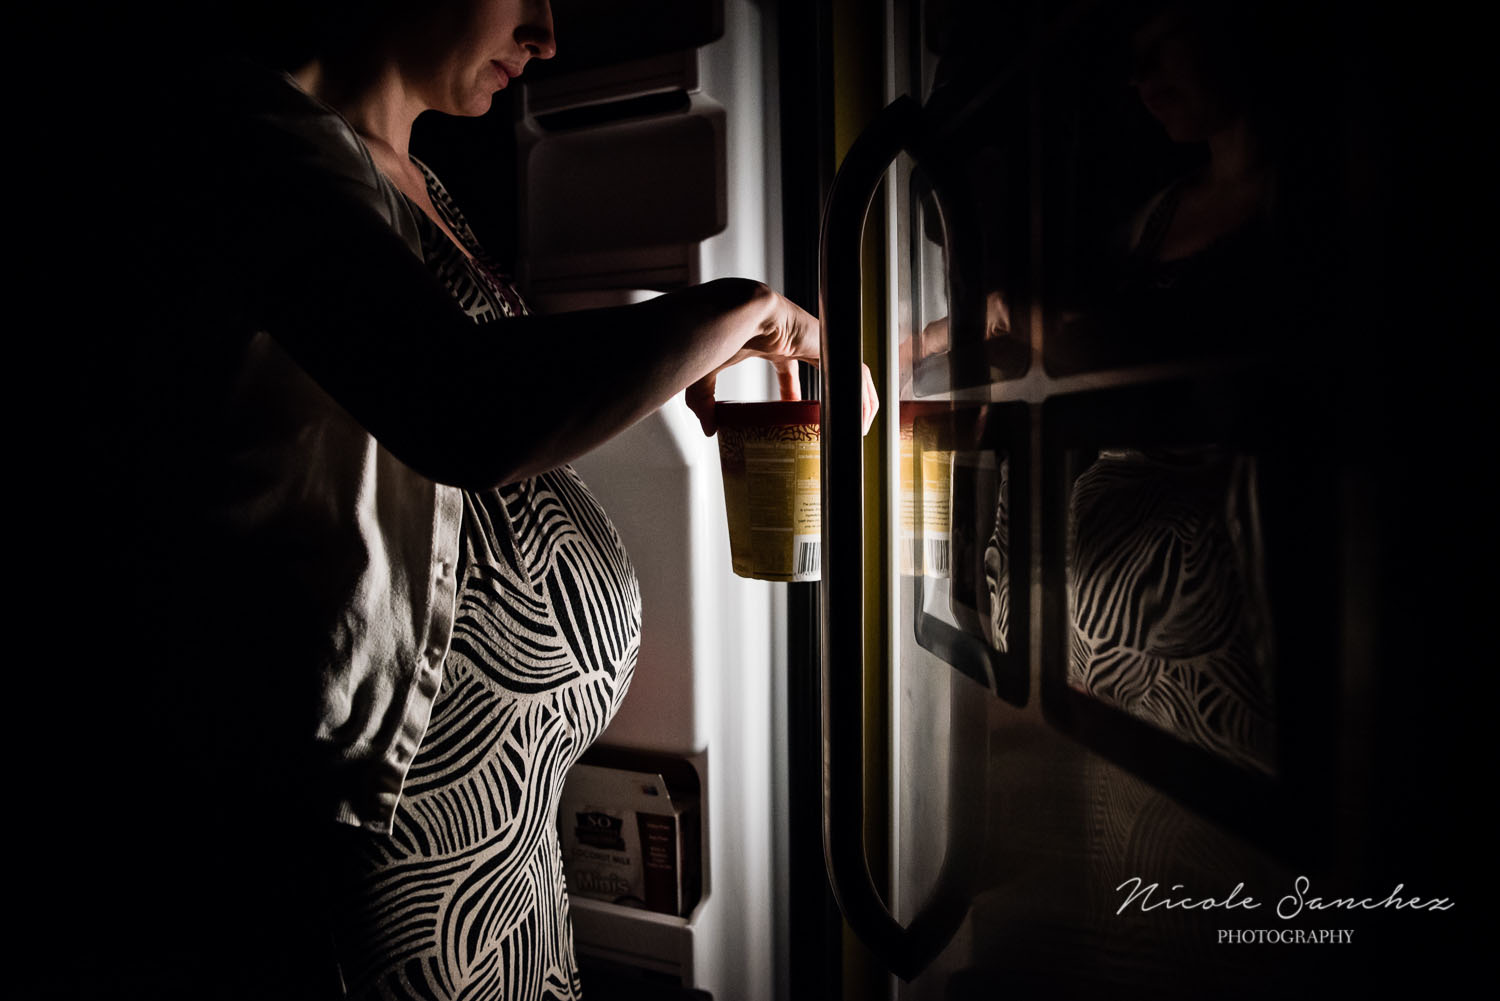 Maternity Self Portrait with Ice Cream by Artificial Refrigerator Light